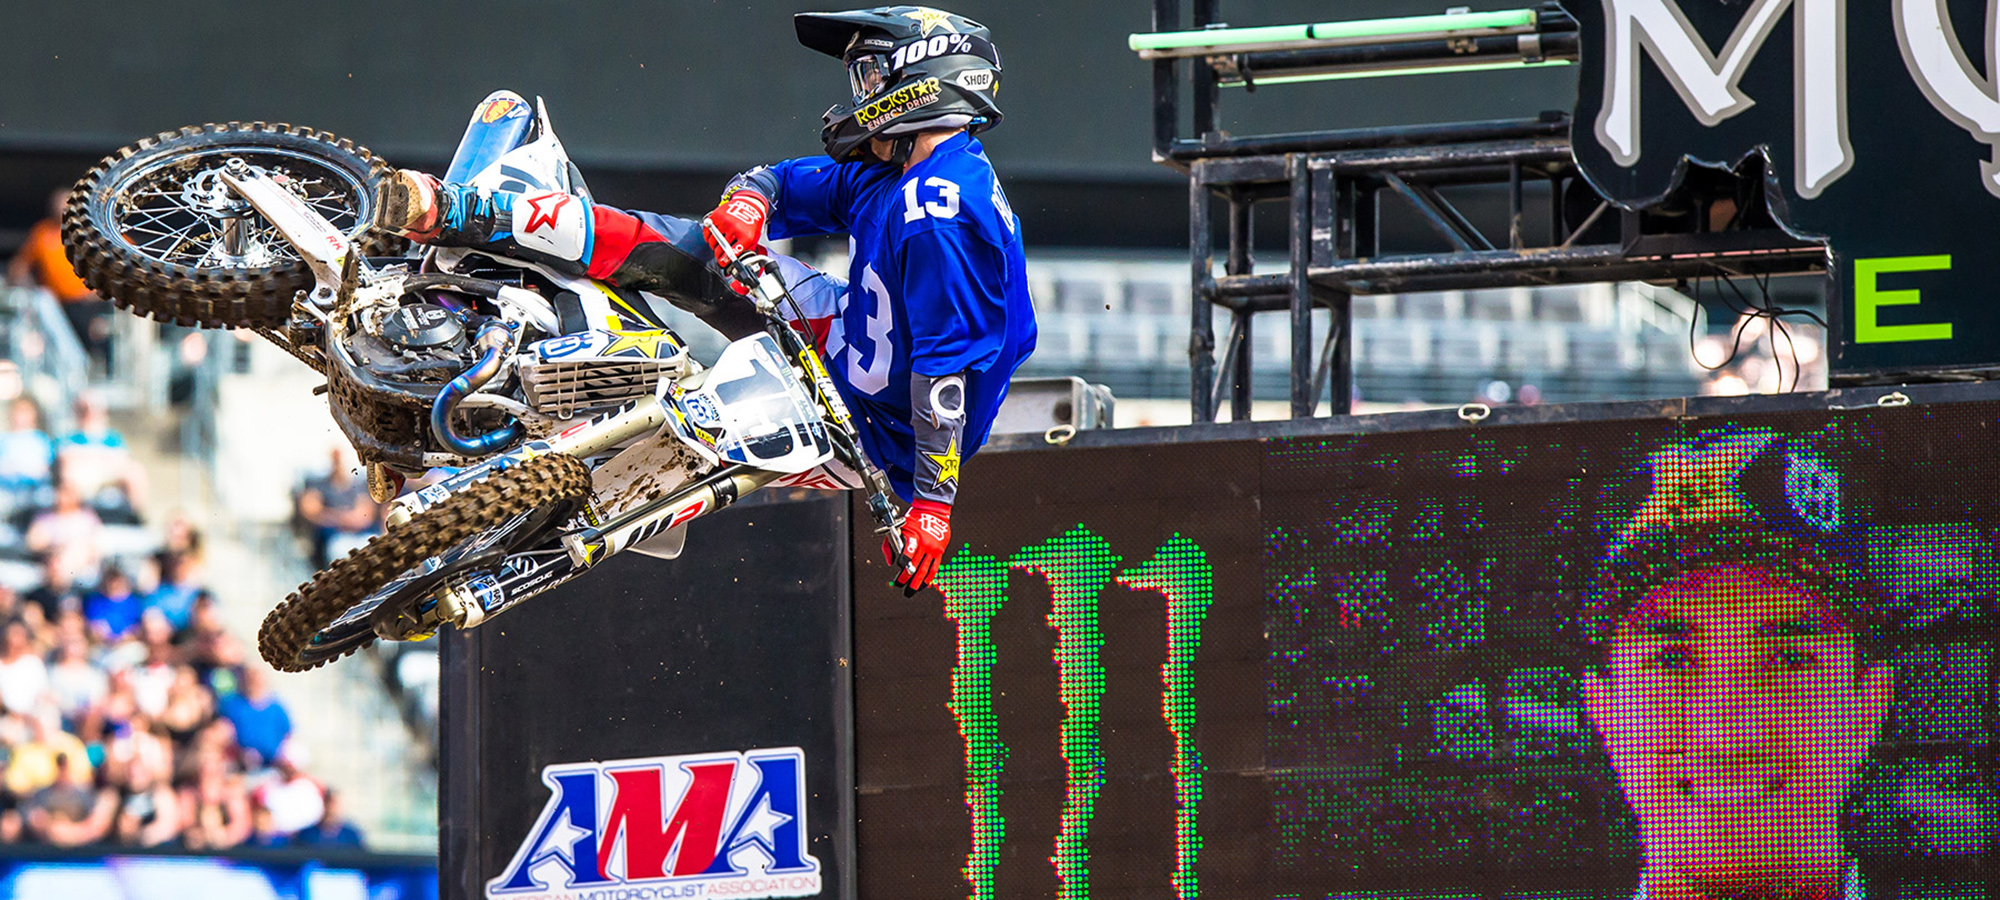 East Rutherford, New Jersey Supercross 2017